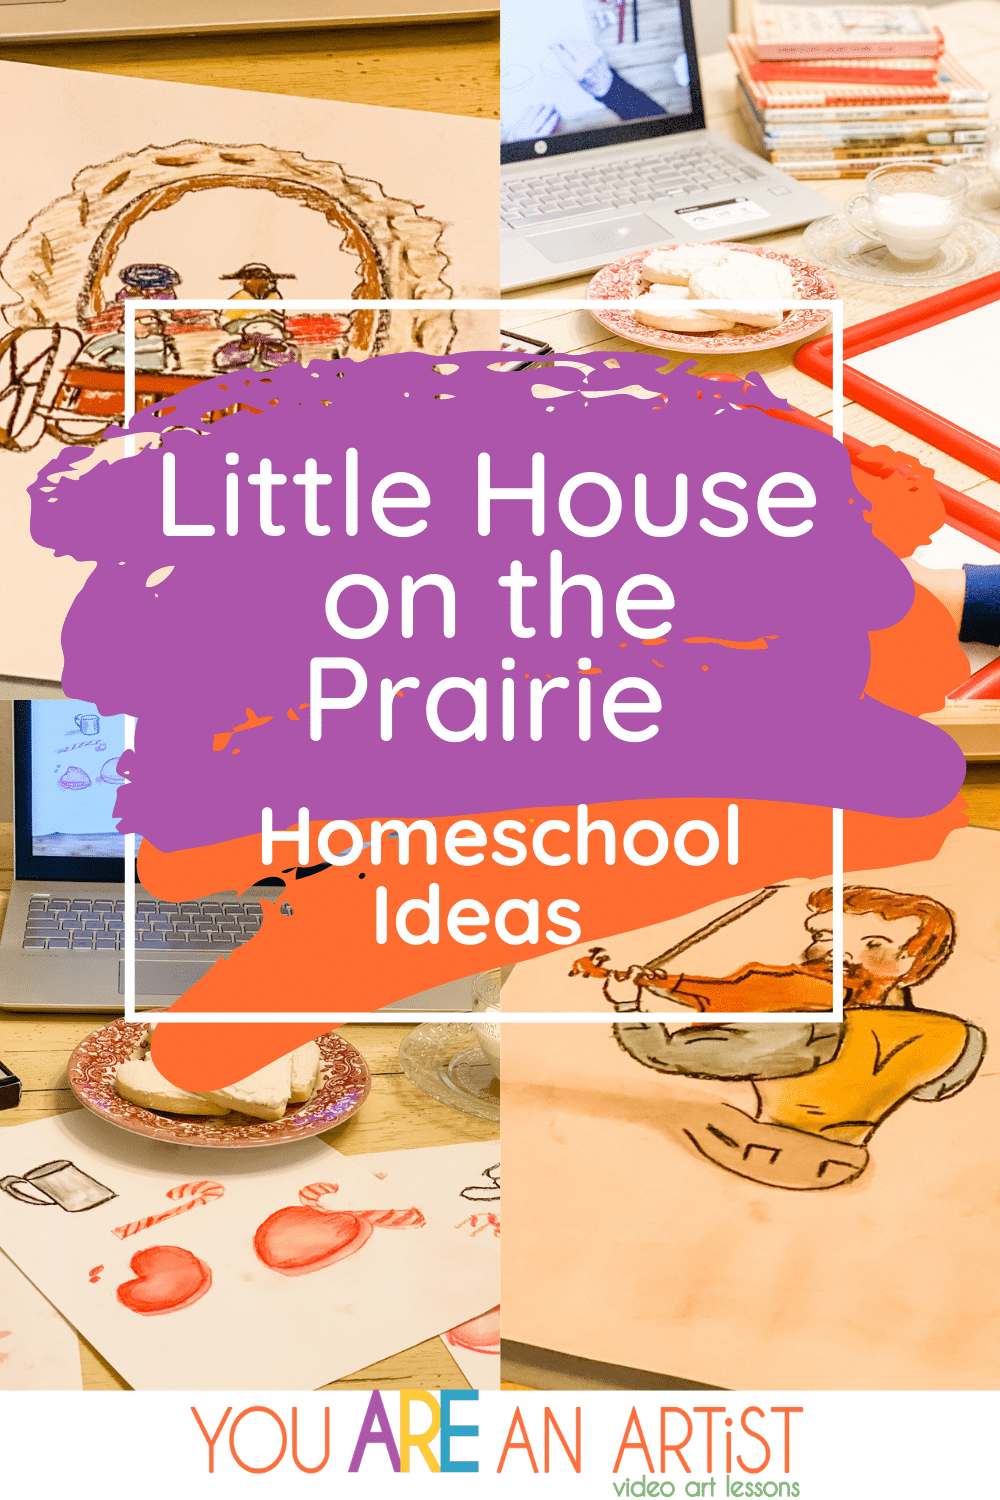 Little House on the Prairie Homeschool Ideas